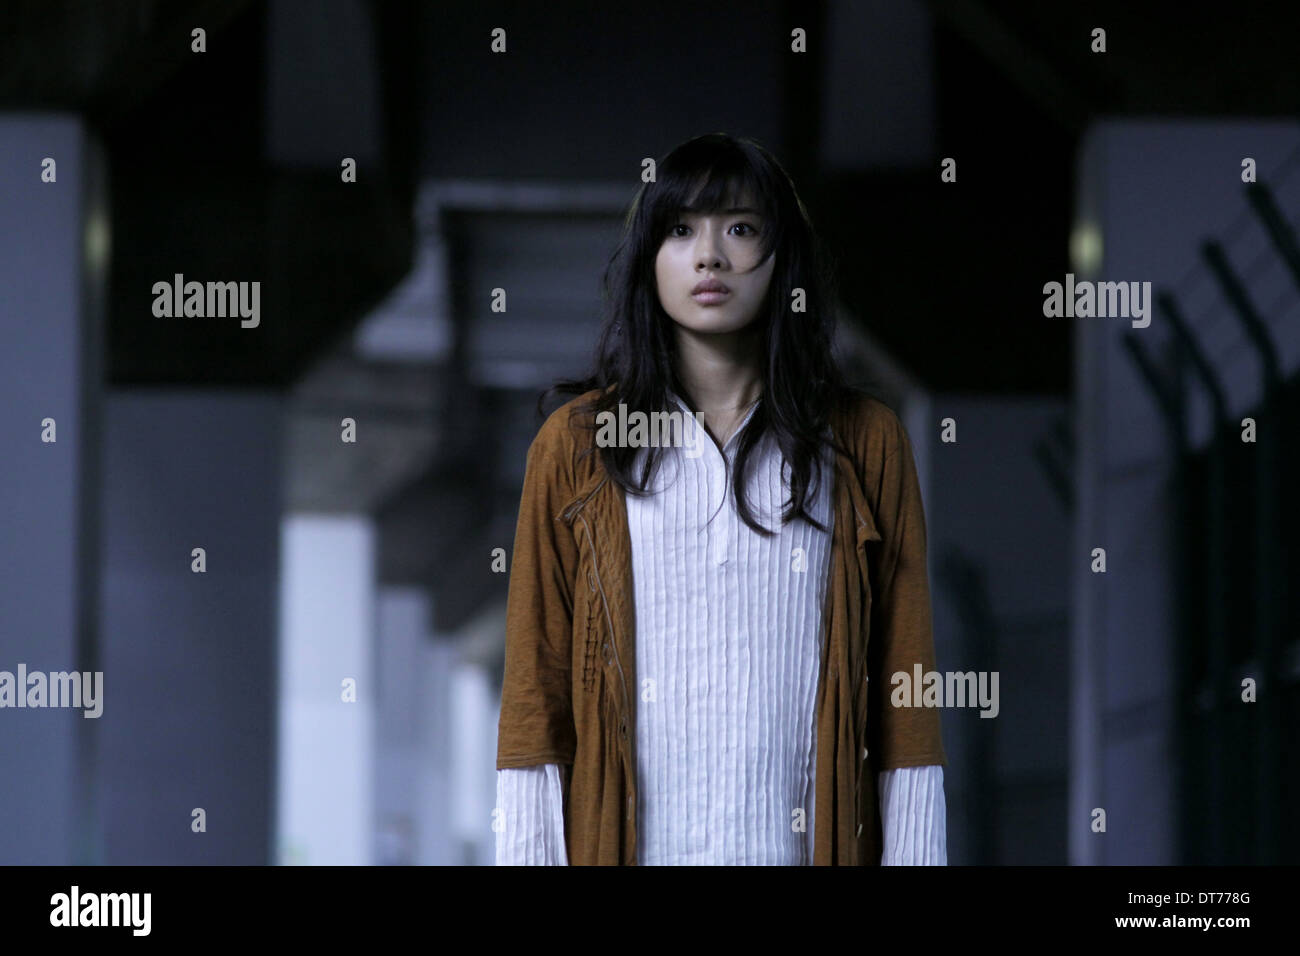 Sadako Stock Photos & Sadako Stock Images - Alamy